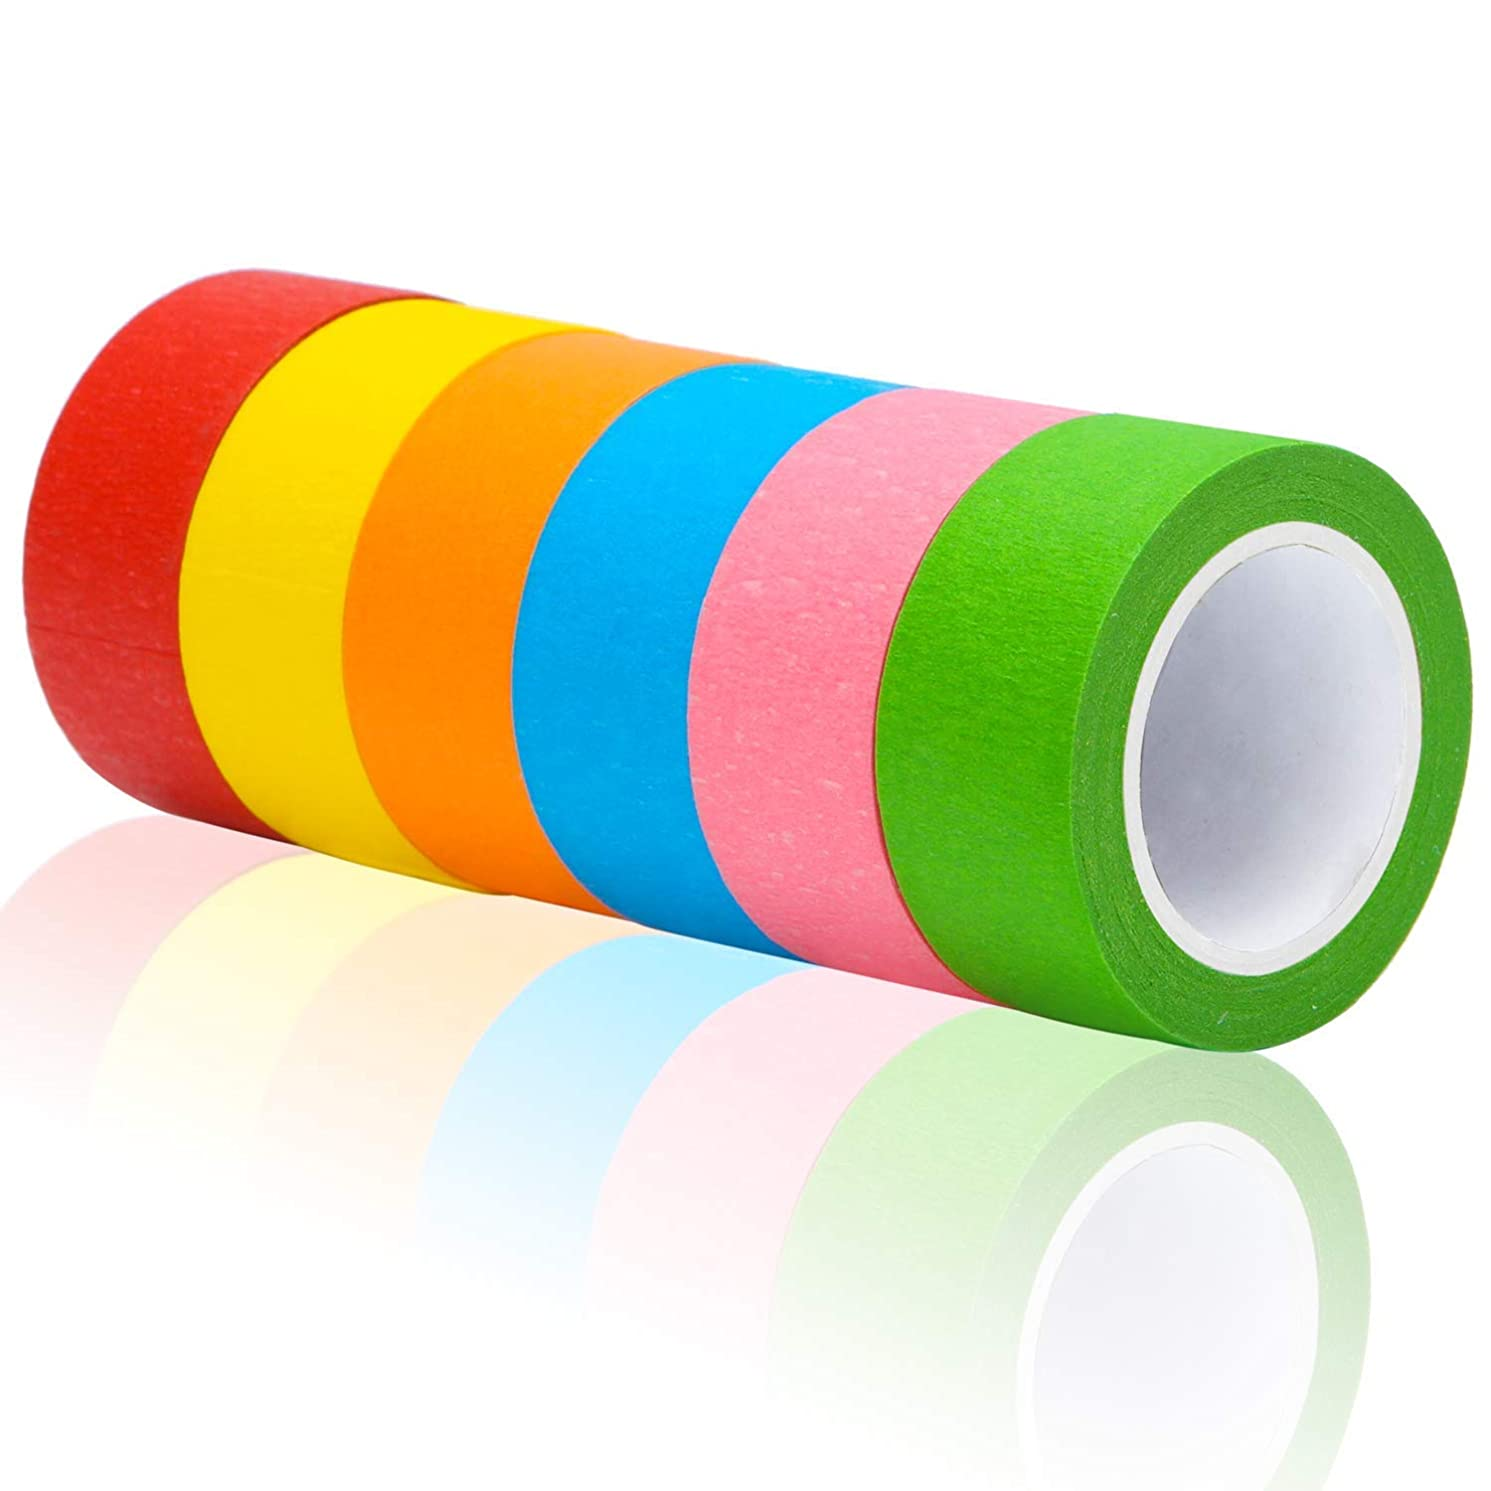 Aunifun 6 Pieces 2 Inches Colored Masking Tape Rainbow Masking Tape Labeling Tape Graphic Art Tape Roll for Fun DIY Arts Supplies Kit, 6 Colors